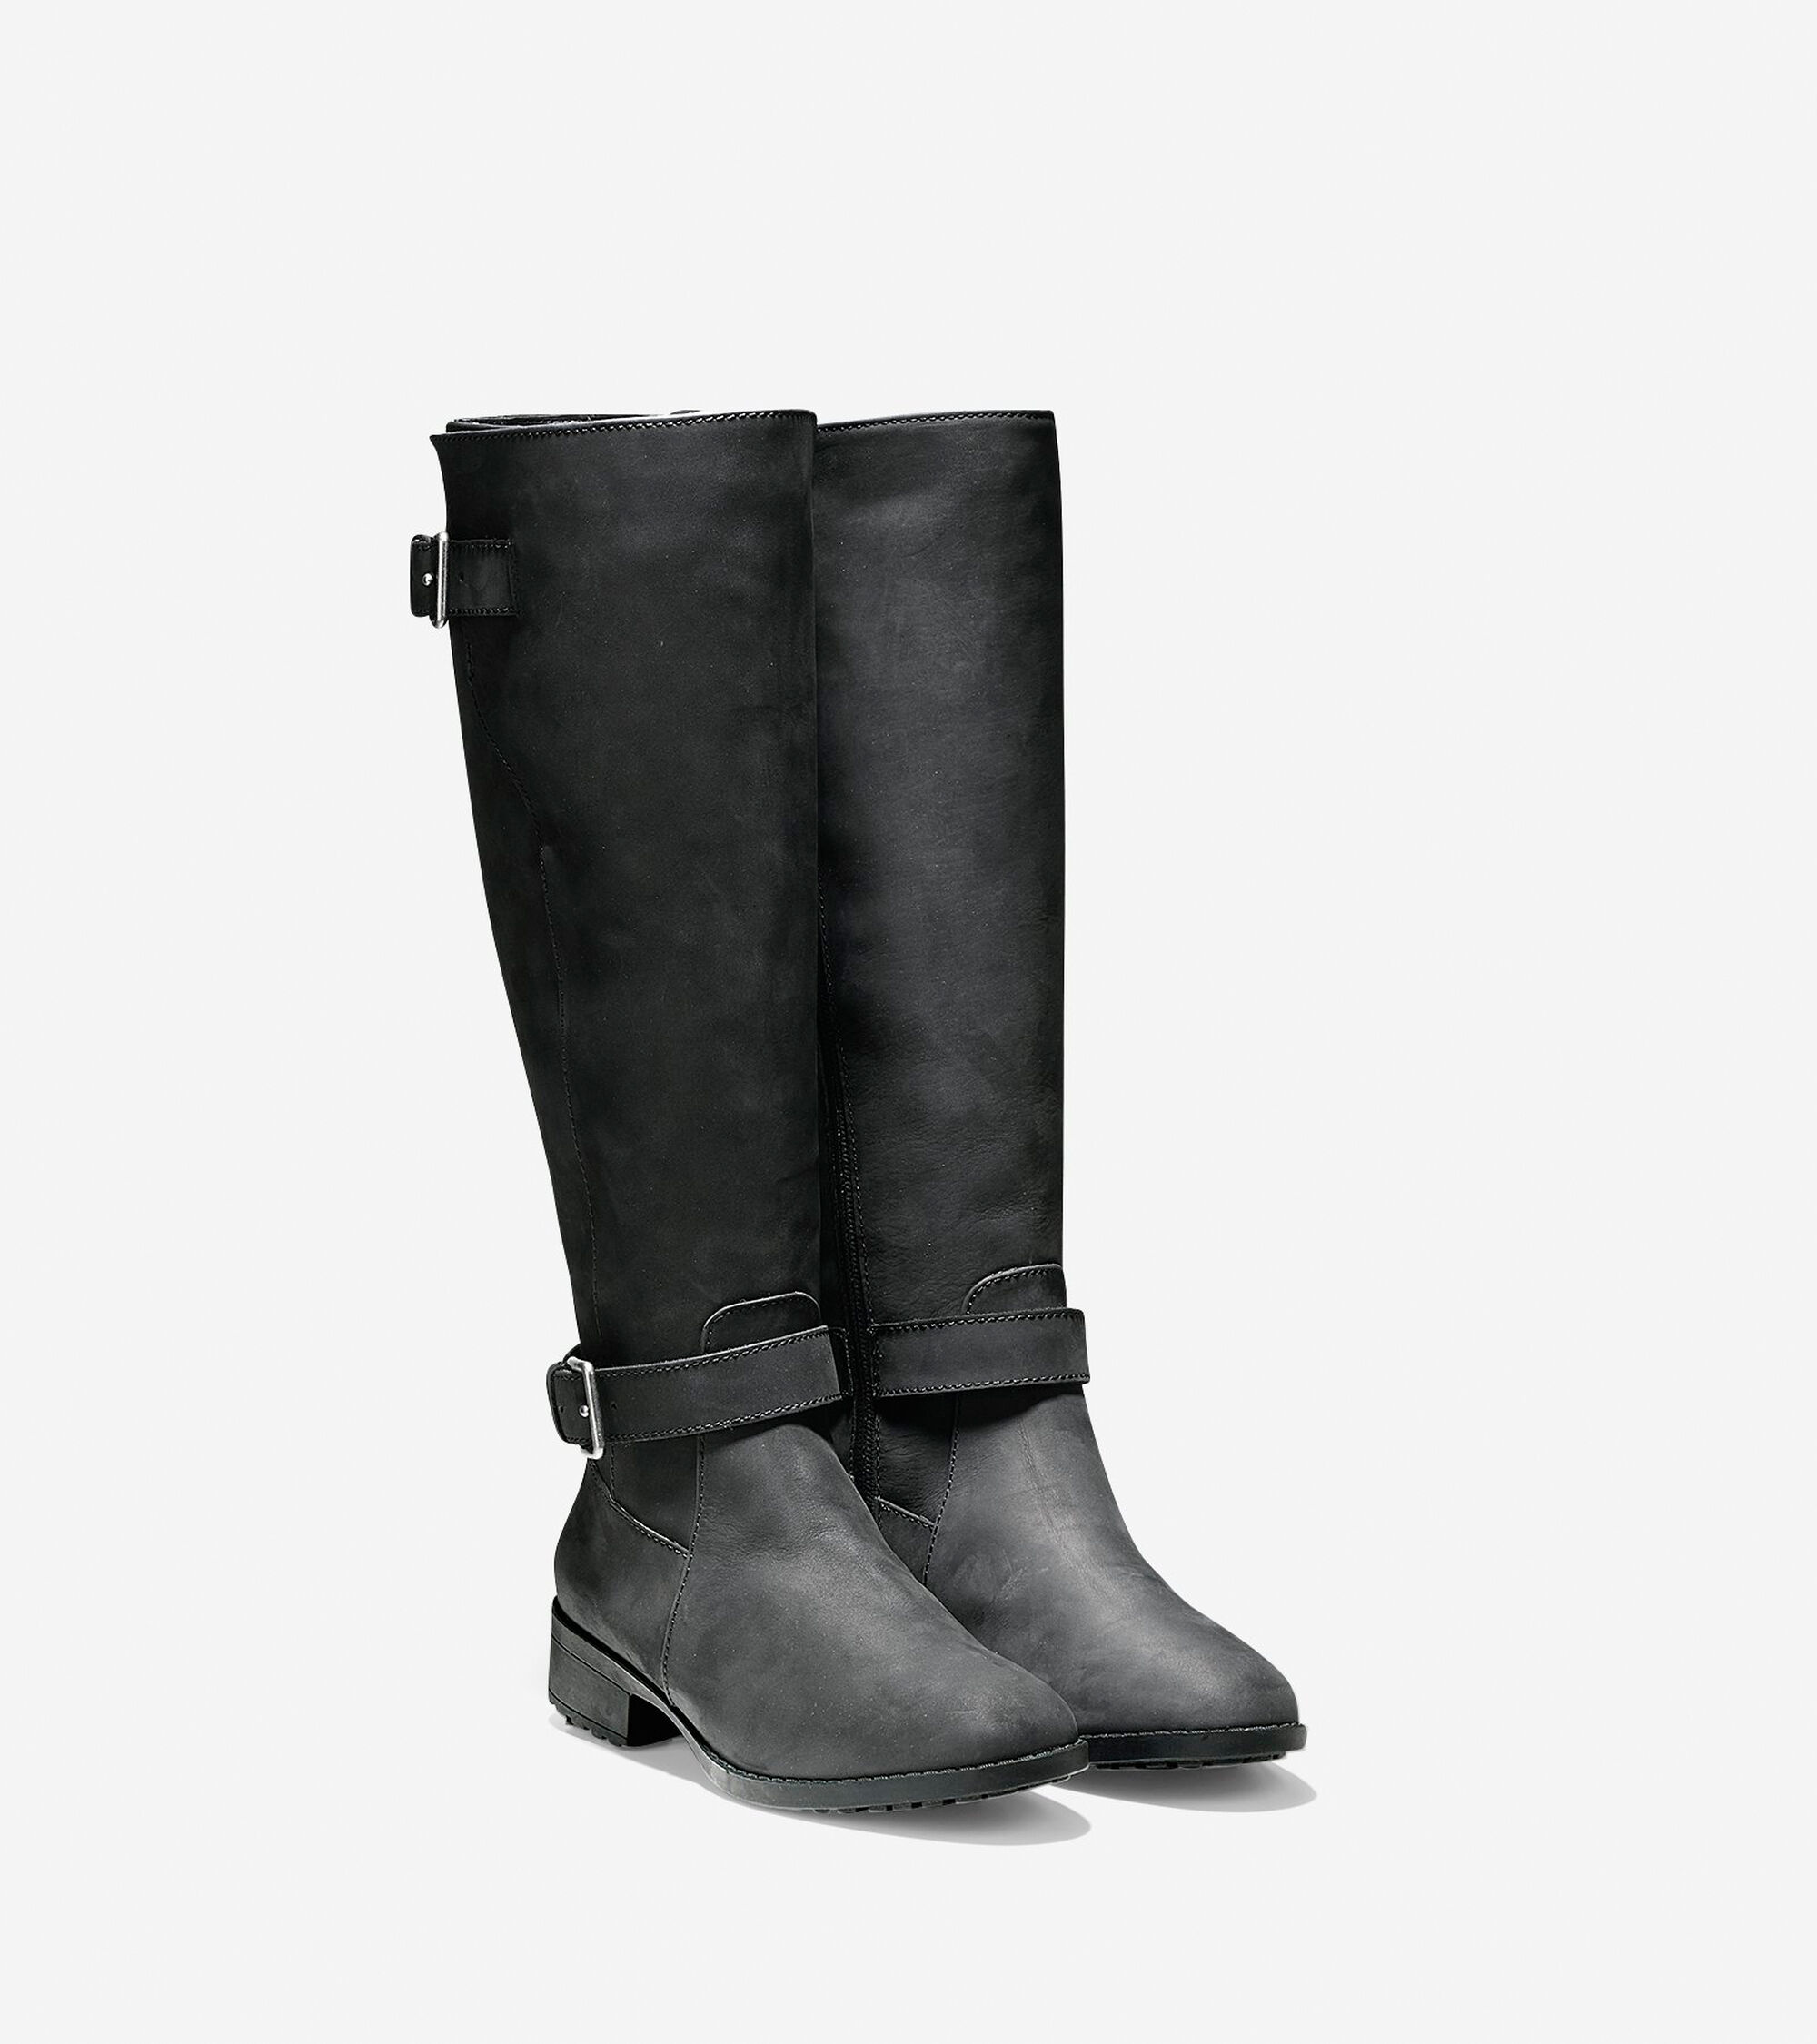 c020a3f3b5f6 Women s Hastings Waterproof Boots Extended Calf in Black